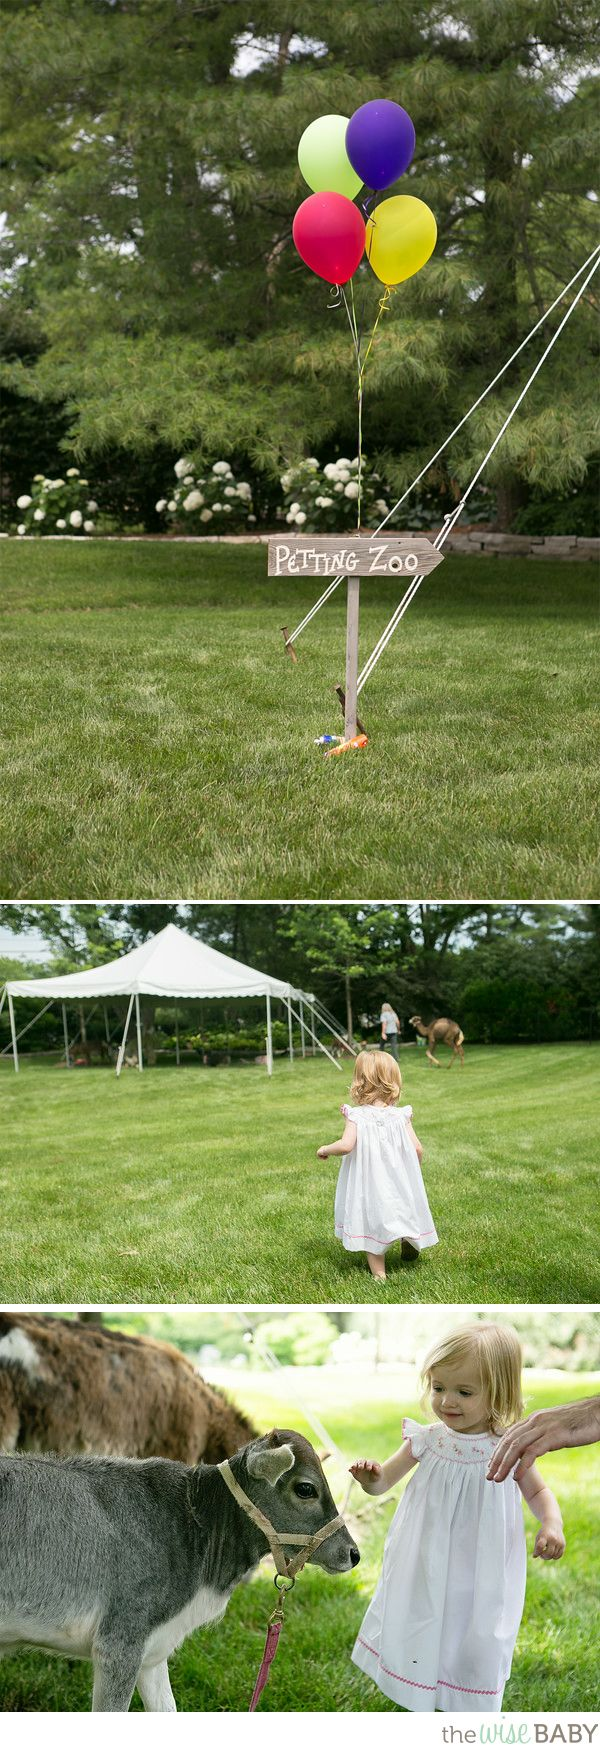 Eloise's Petting Zoo Birthday Party